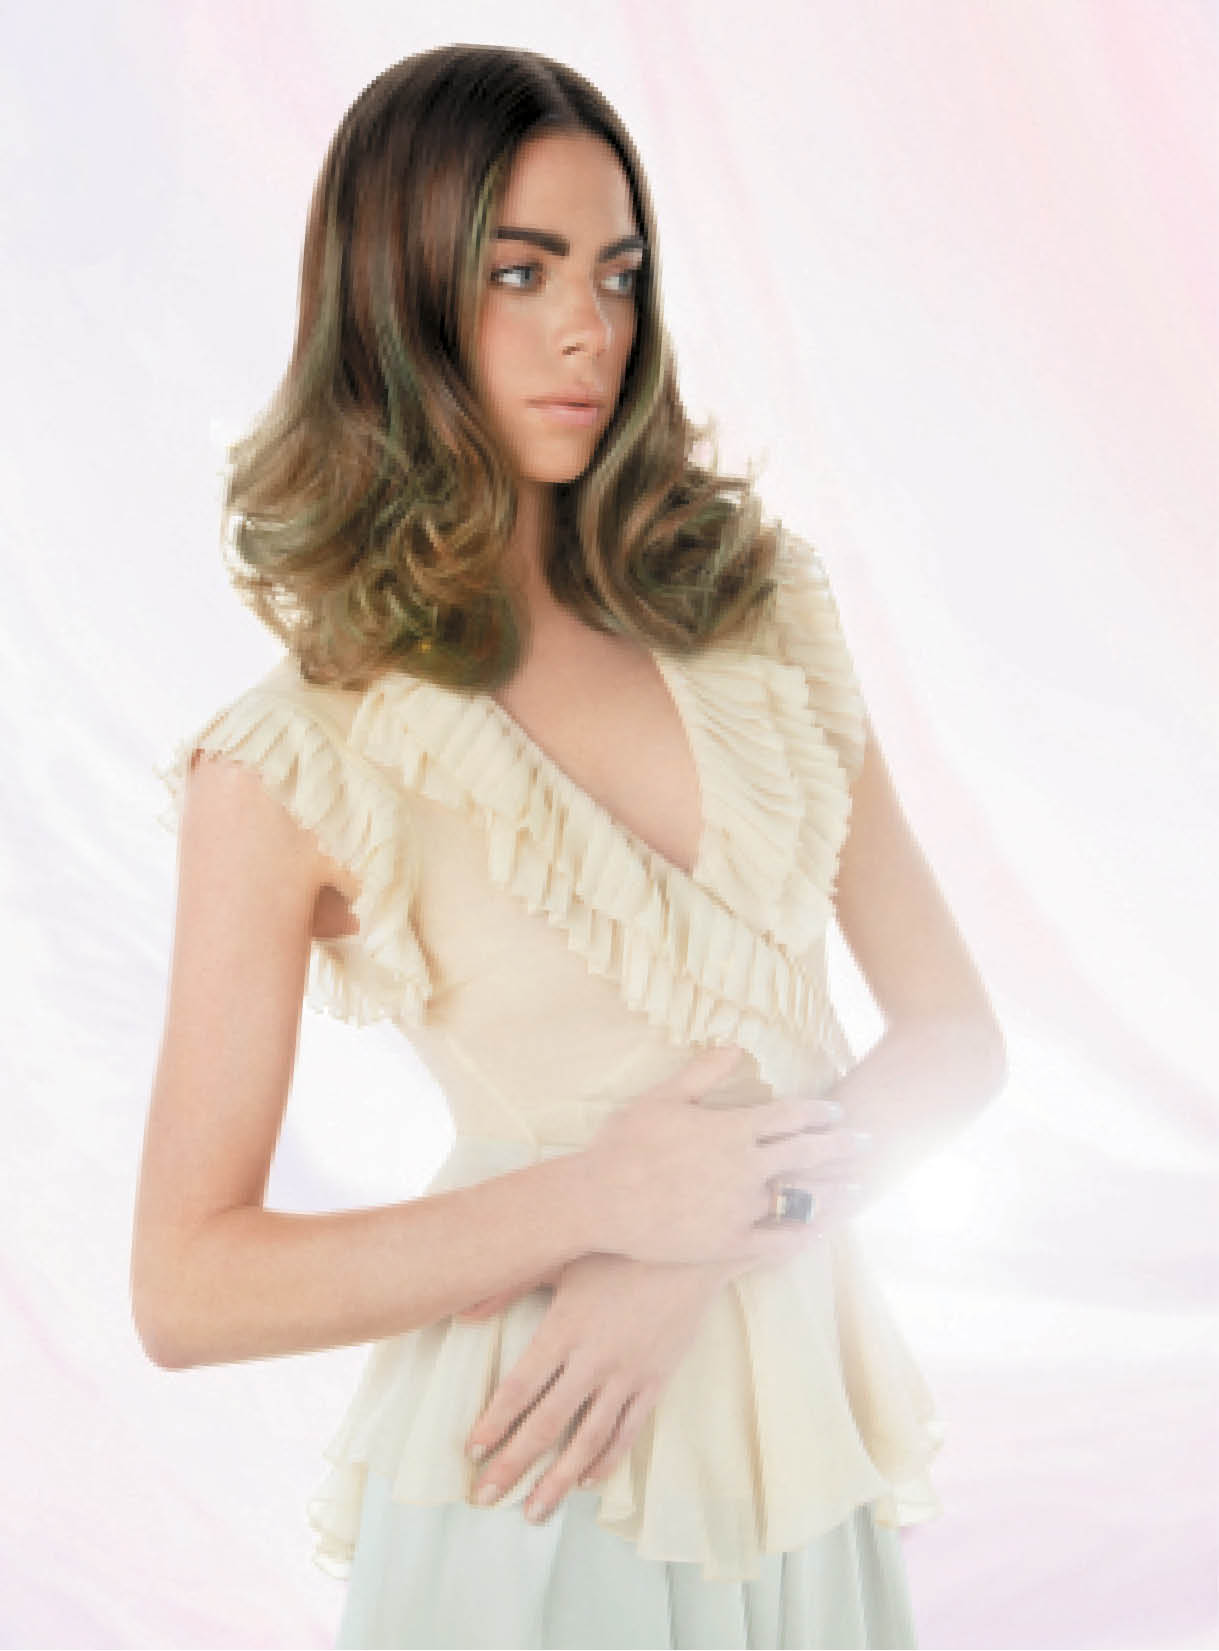 Ashton Morgan put a spin on the Journey of Enlightenment trend with Wella Professionals Illumina Color, which she applied from the base to mid-shaft. She used Blondor Freelights to balayage highlights for a mix of light and dark hues in the hair.